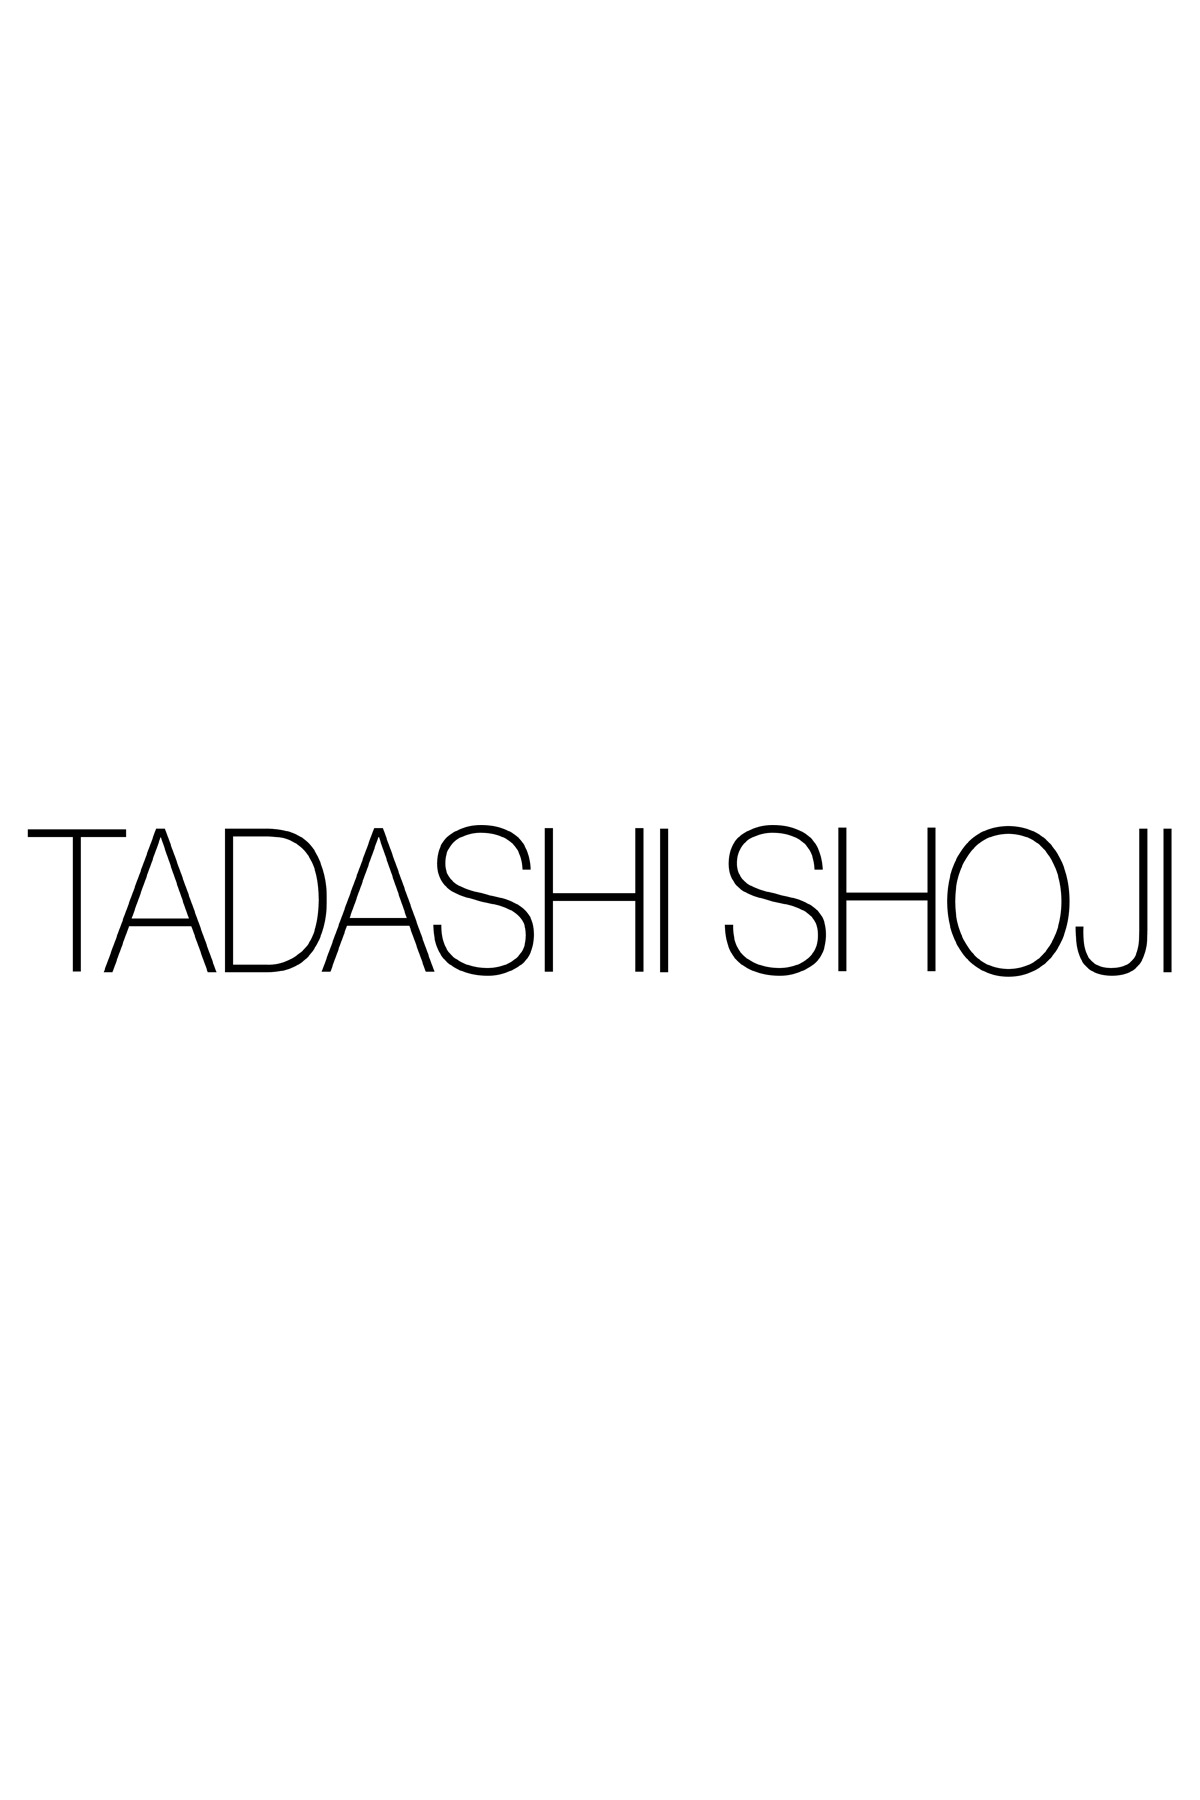 Dress code evening gown -  But Make Sure That The Dress Is Formal Looking And Not A Jersey Knit Material That Might Appear Too Casual For The Event